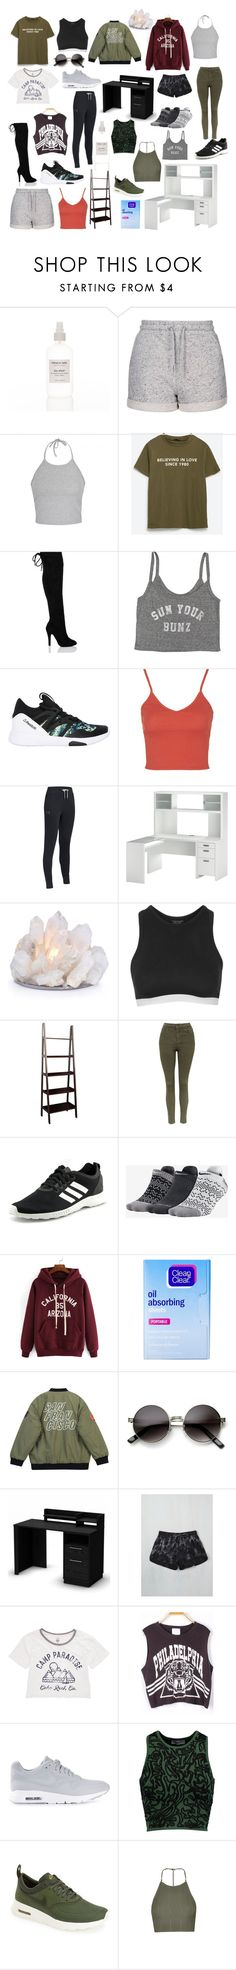 """""""Untitled #22"""" by monyf ❤ liked on Polyvore featuring Topshop, Ally Fashion, Zara, Billabong, Reebok, Under Armour, jcp, adidas, NIKE and Clean & Clear"""